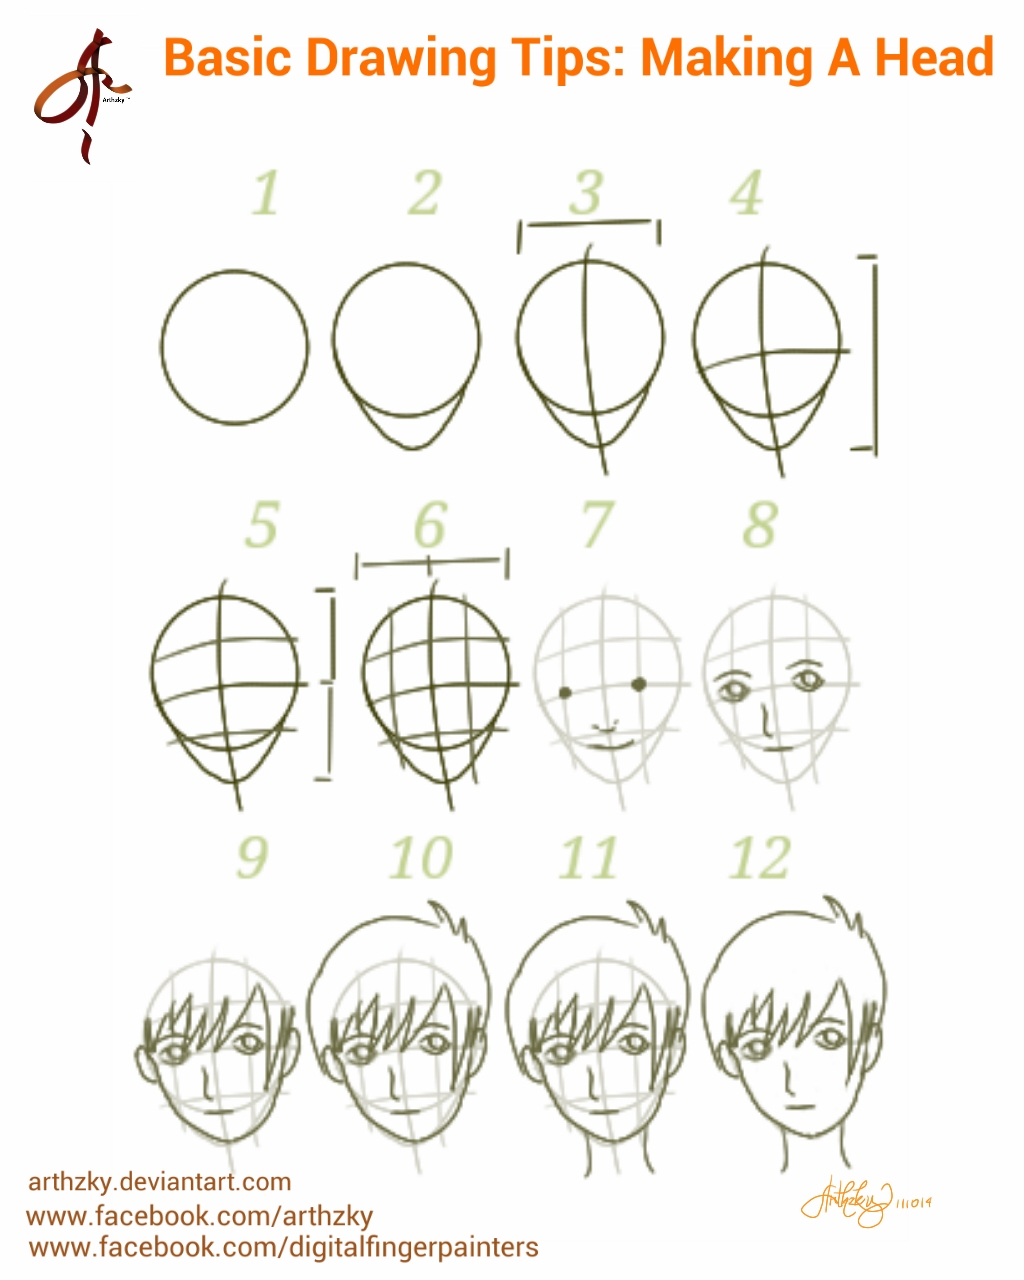 basic drawing tips making a head by arthzky on deviantart